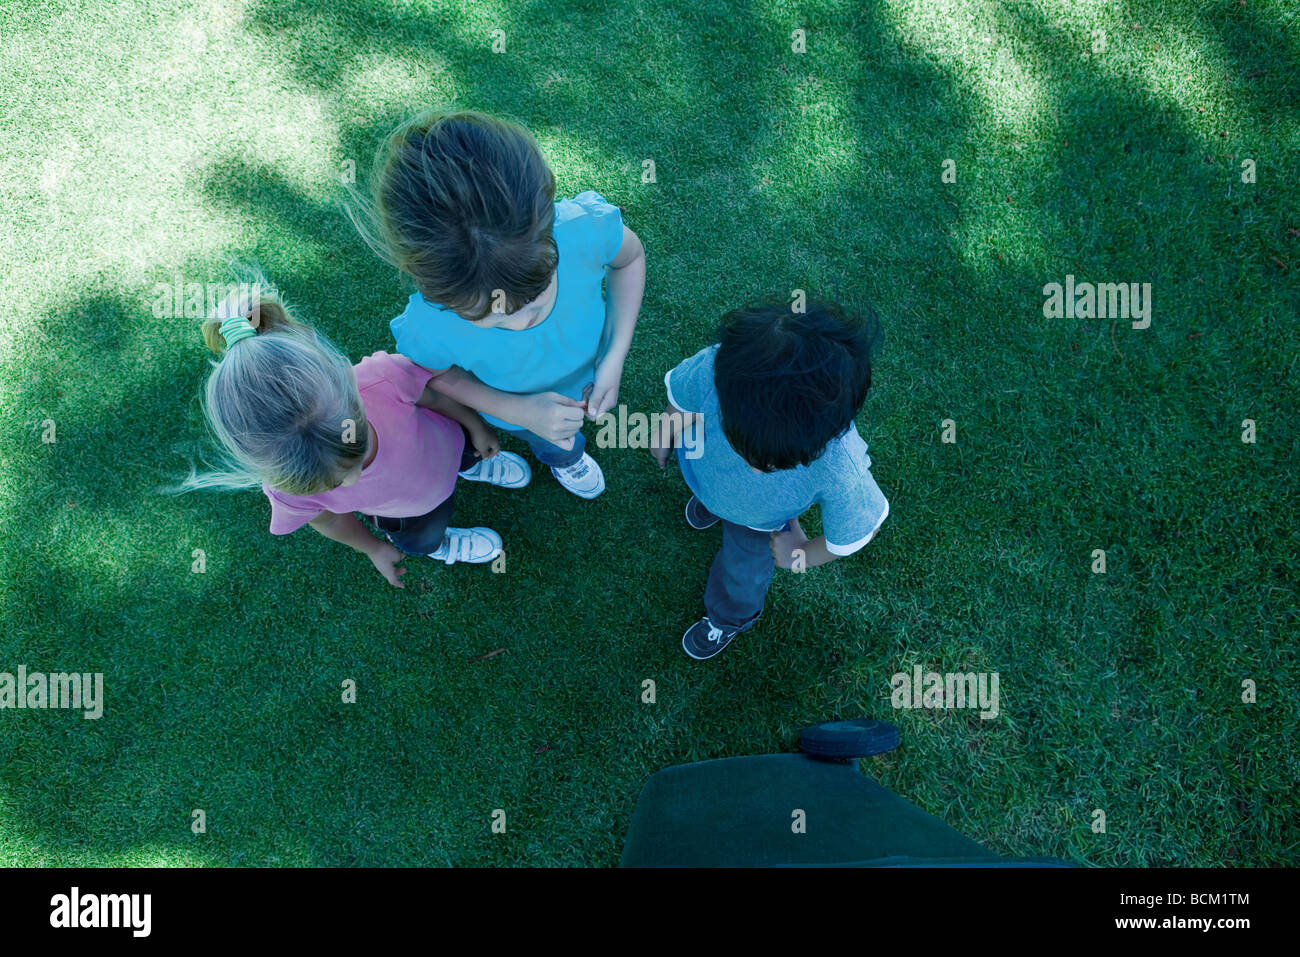 Three children standing on grass, in shade, view from directly above - Stock Image